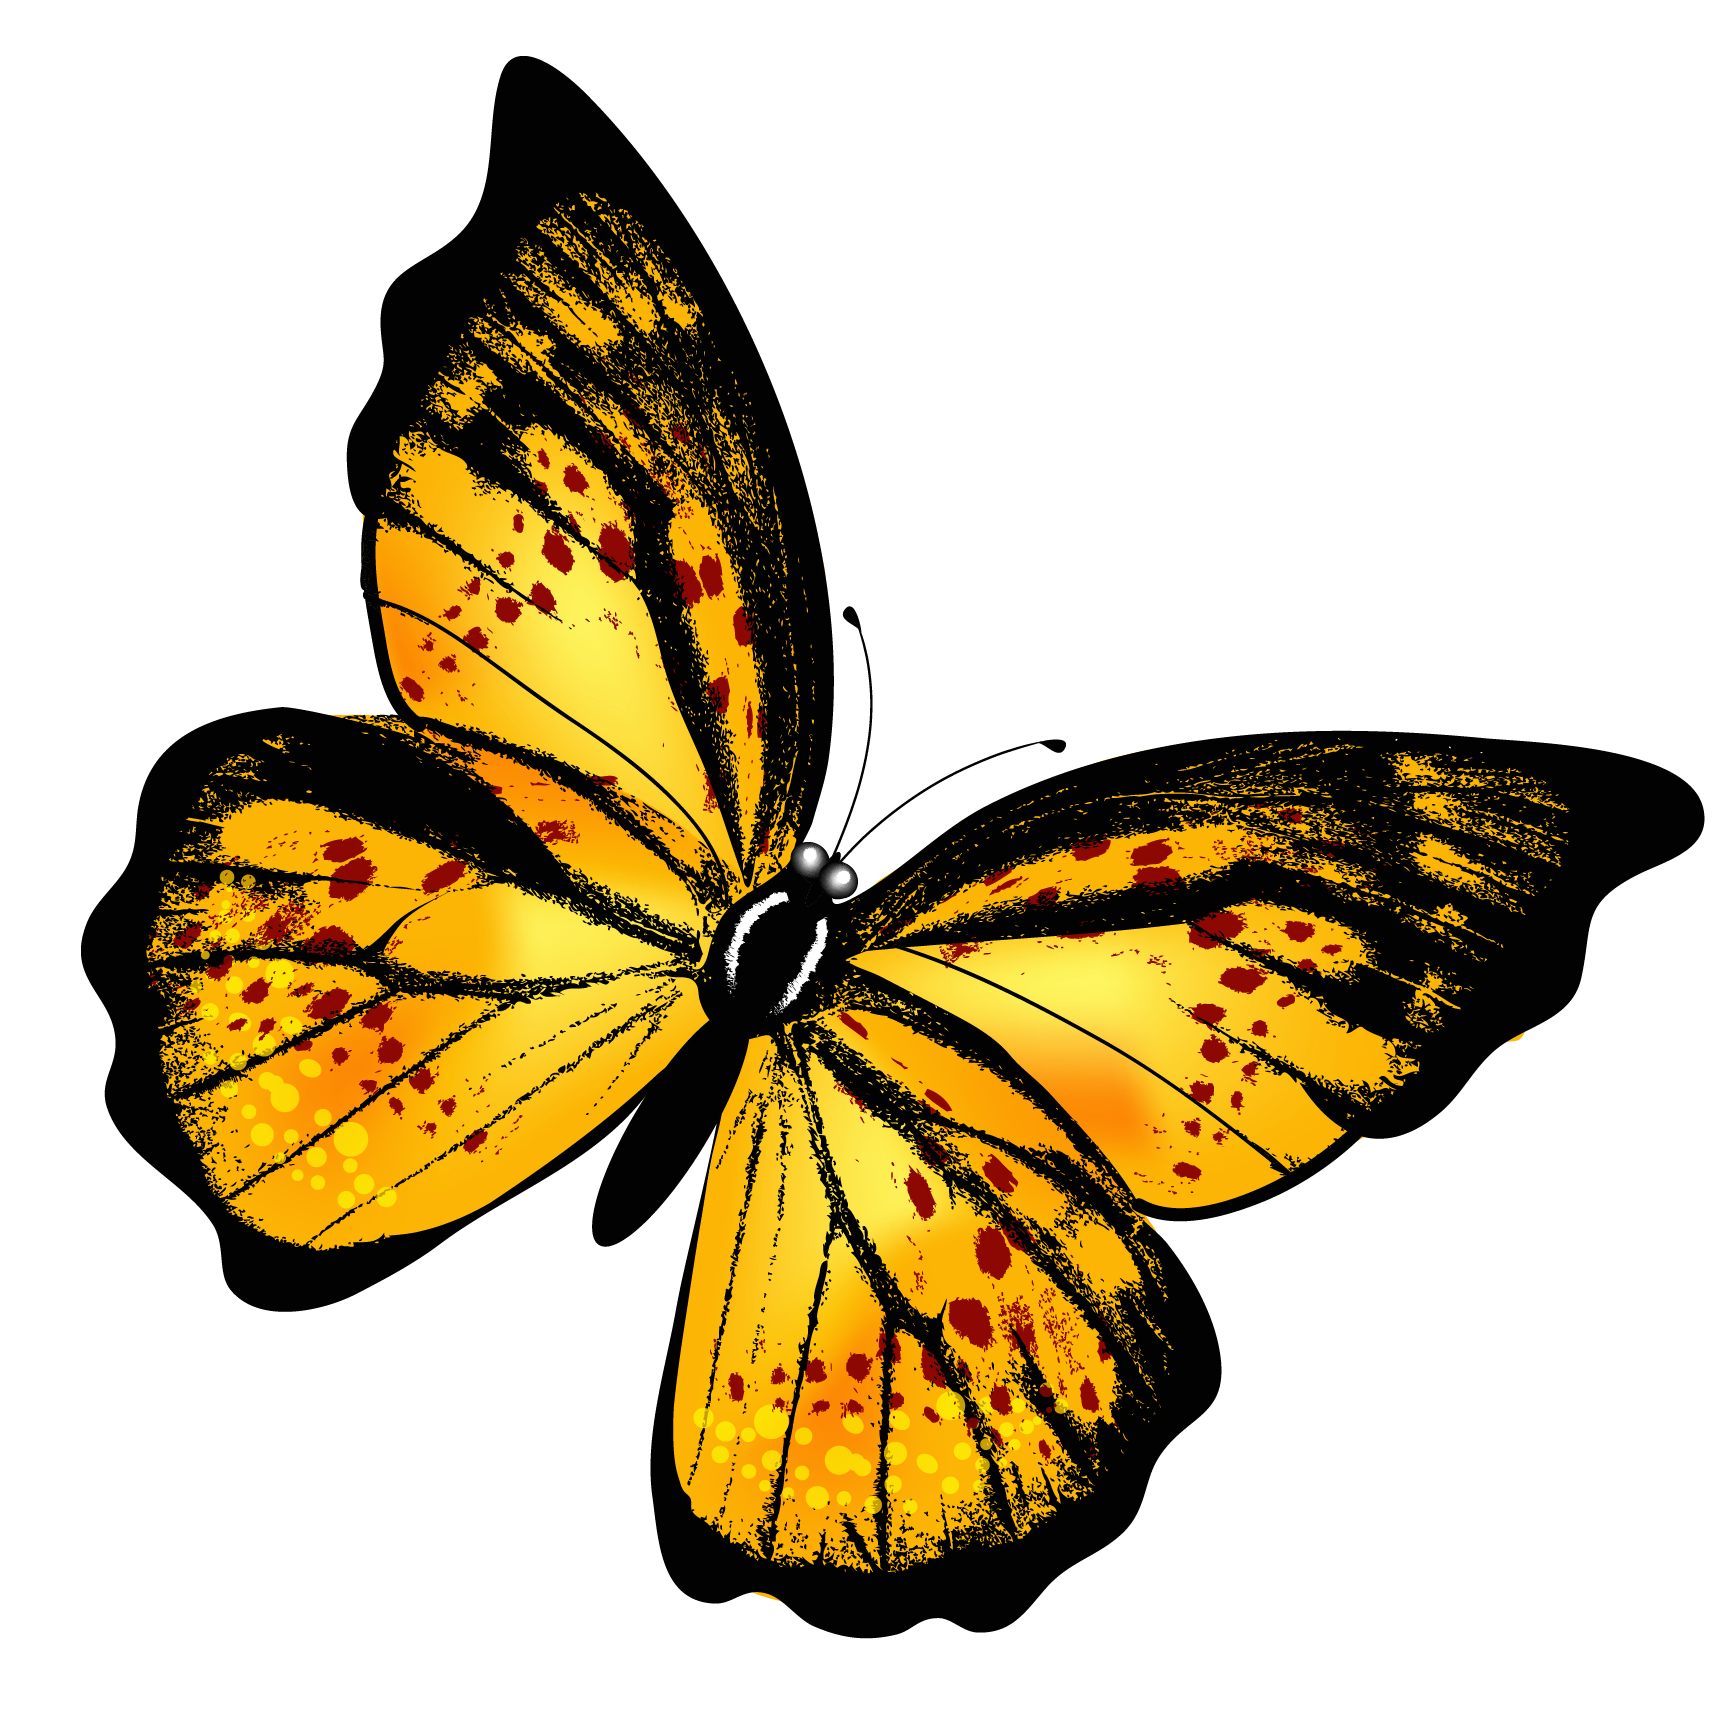 Transparent butterfly png. Yellow clipart picture butterflies